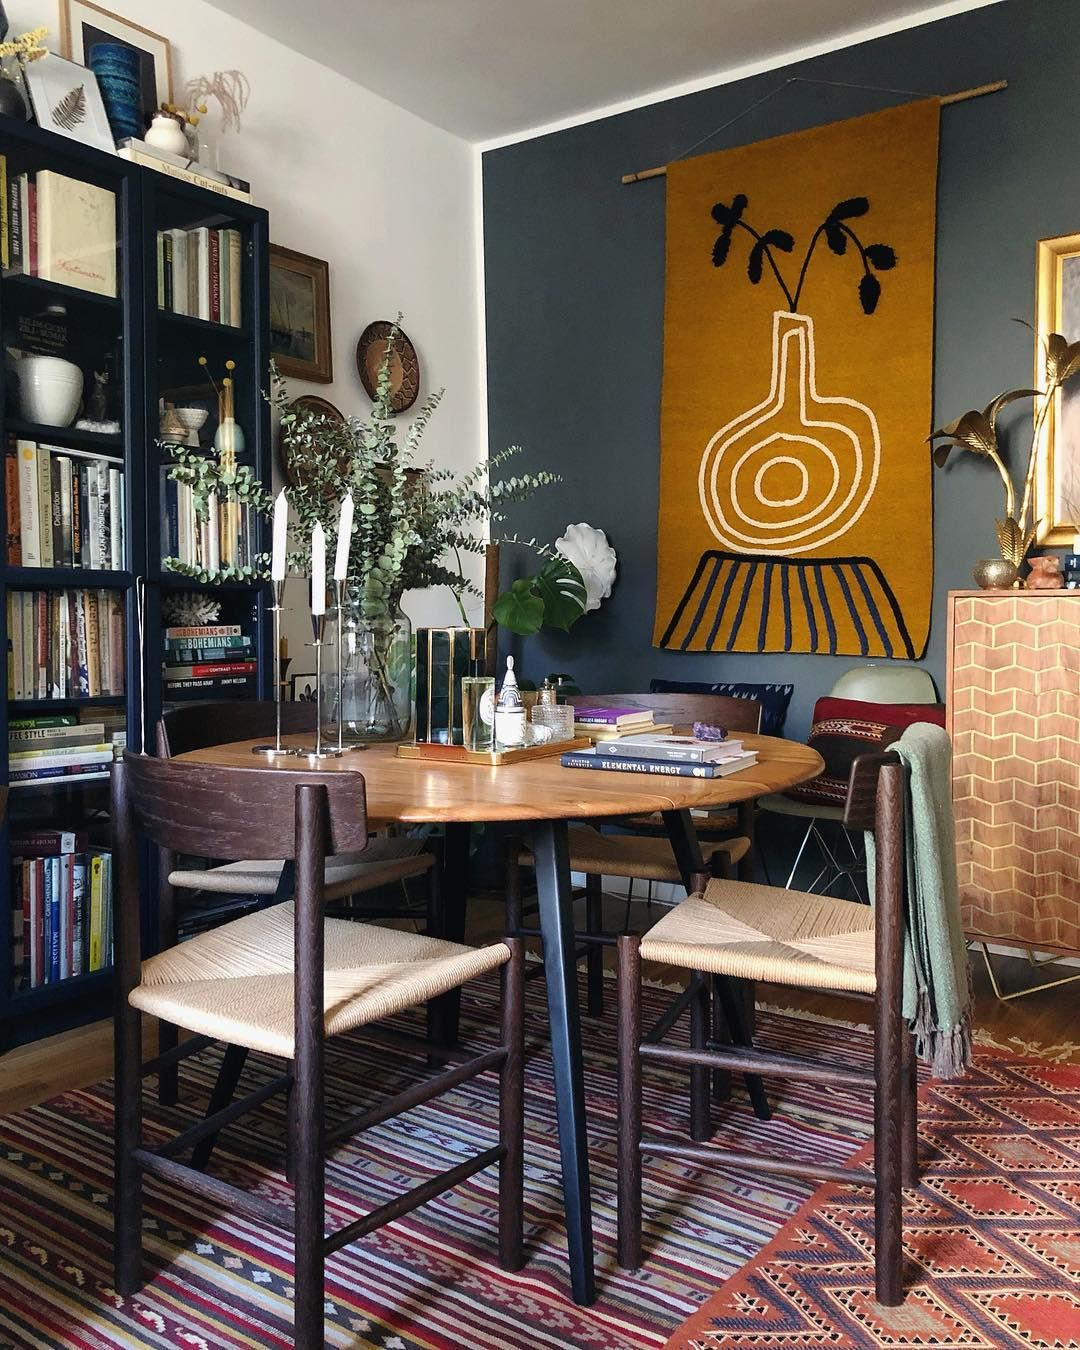 It S Time To Get Creative With These Tricks That Will Help You Fit A Dining Area In Even The Smallest Of Li Dining Room Spaces Circular Dining Table Home Decor #small #living #room #dining #table